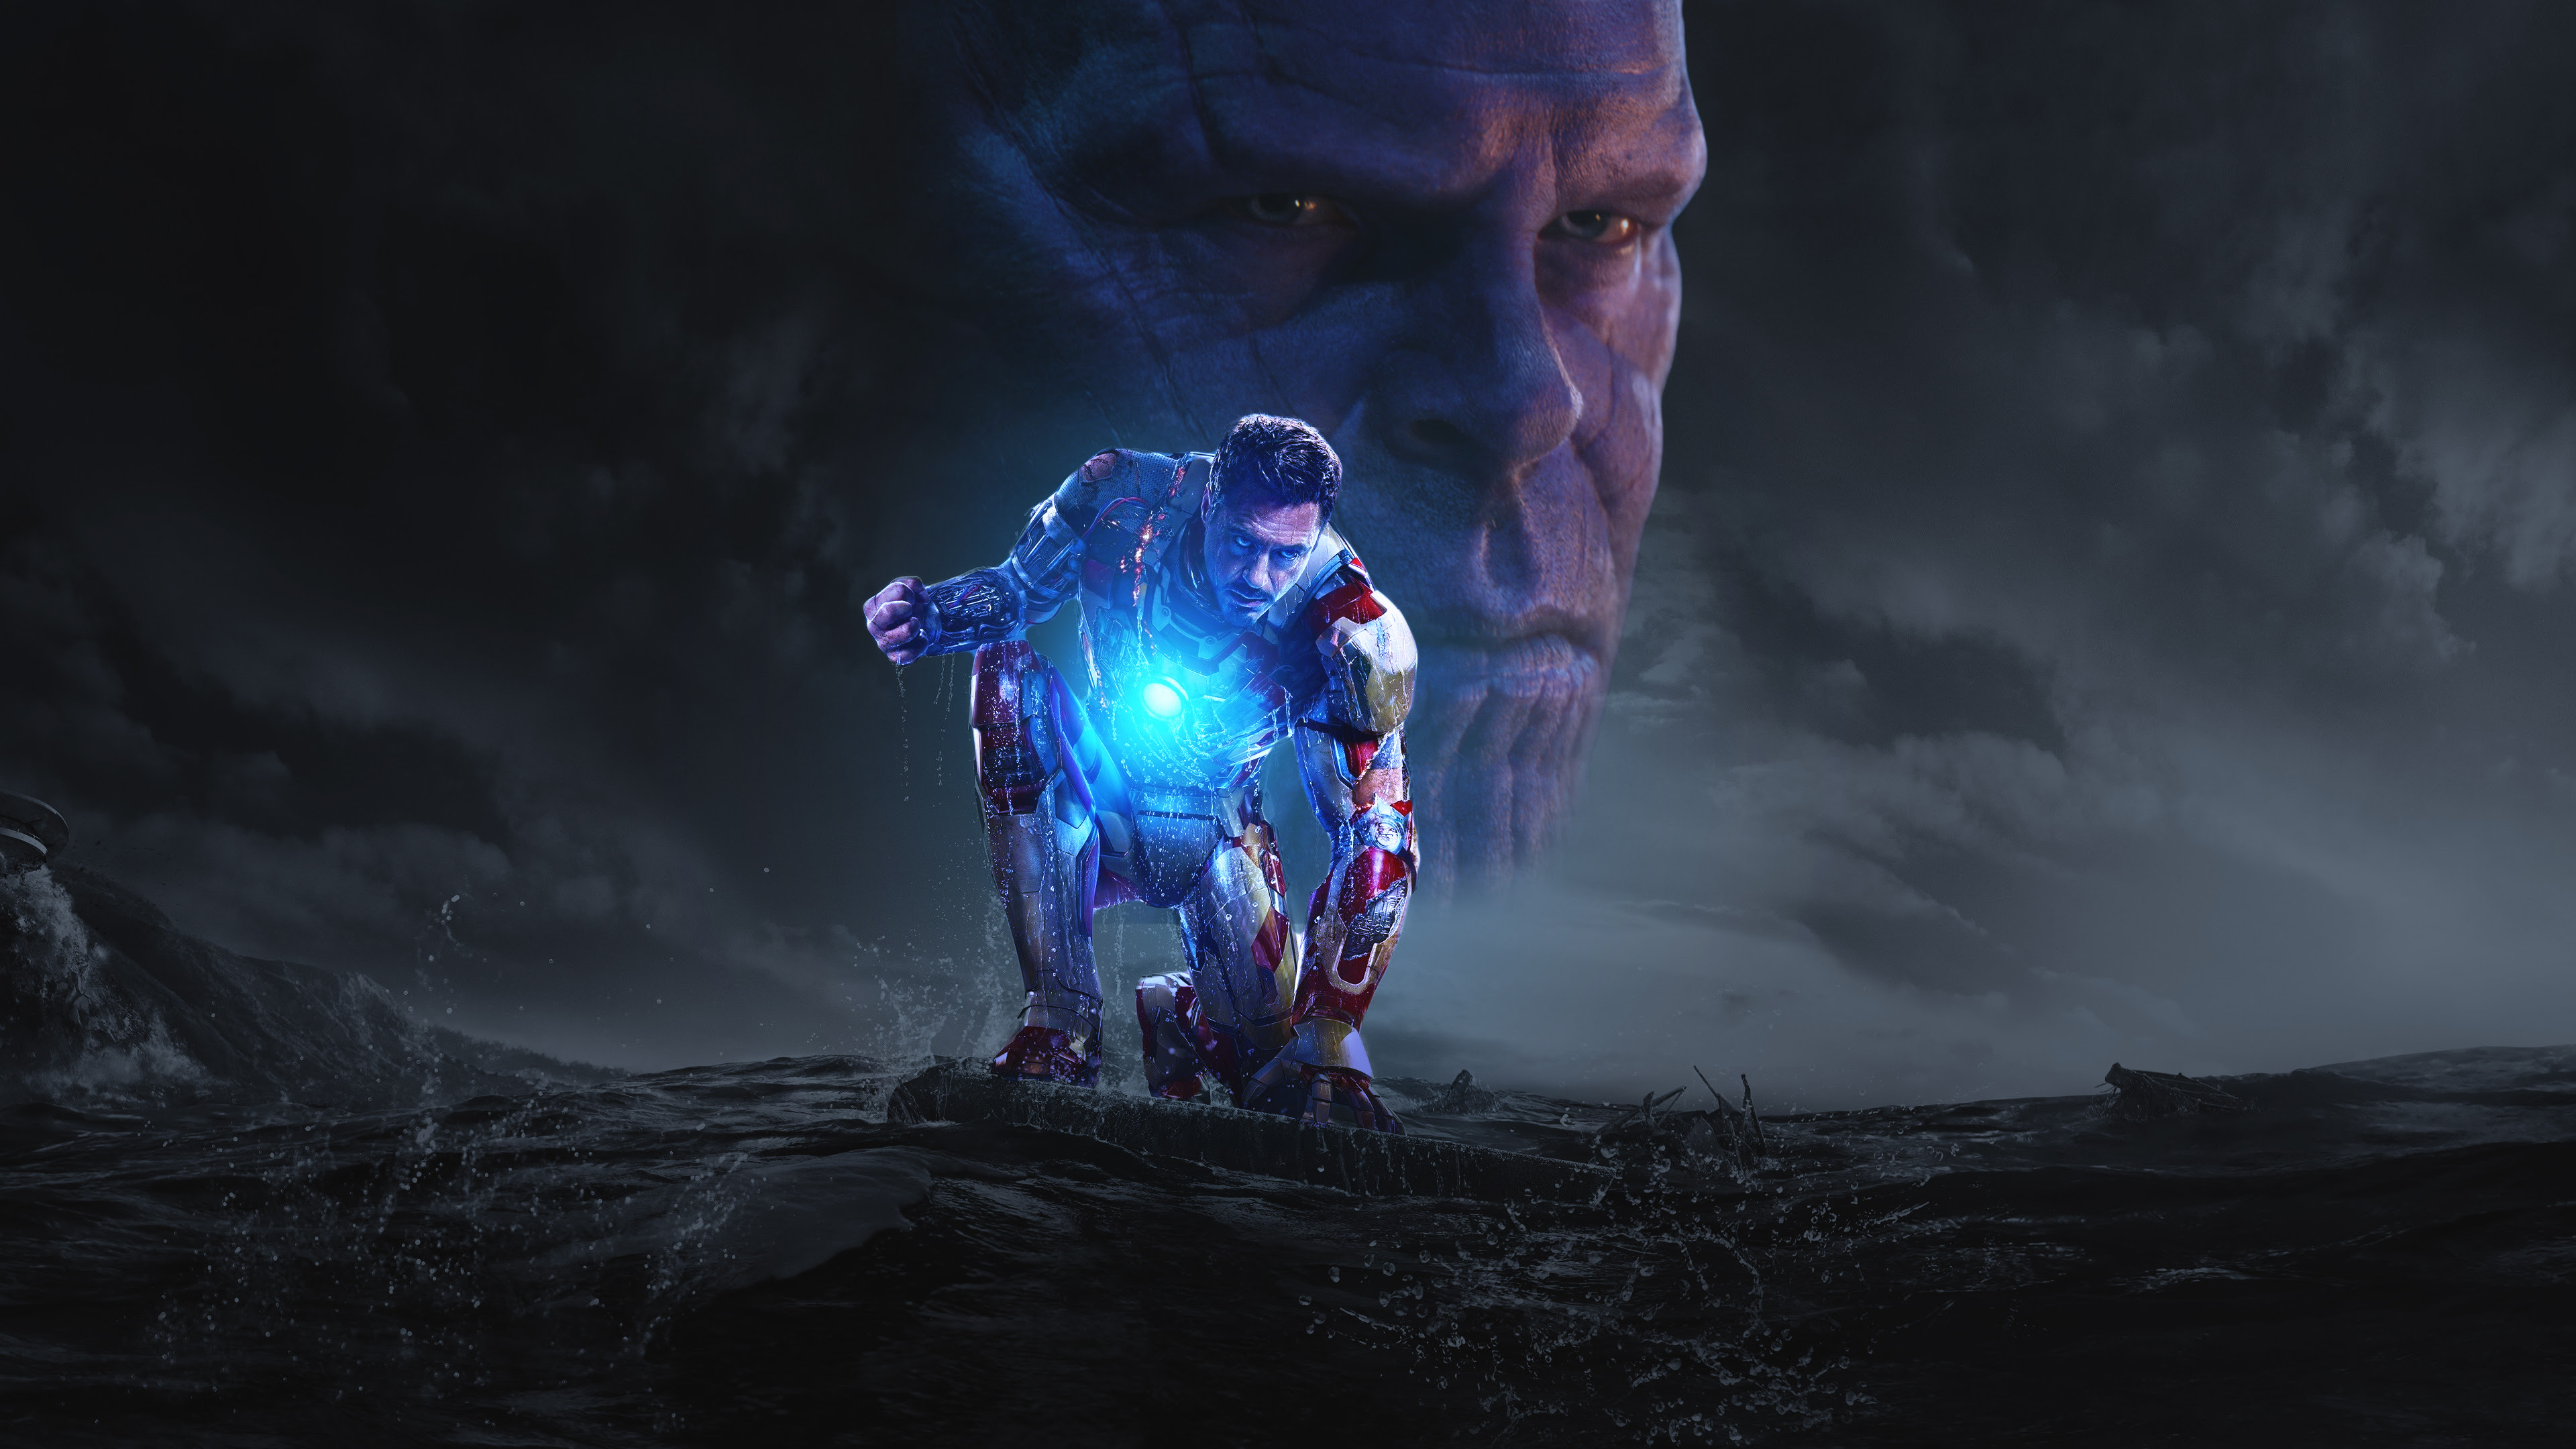 Iron Man And Thanos In Avengers Infinity War Hd Superheroes 4k